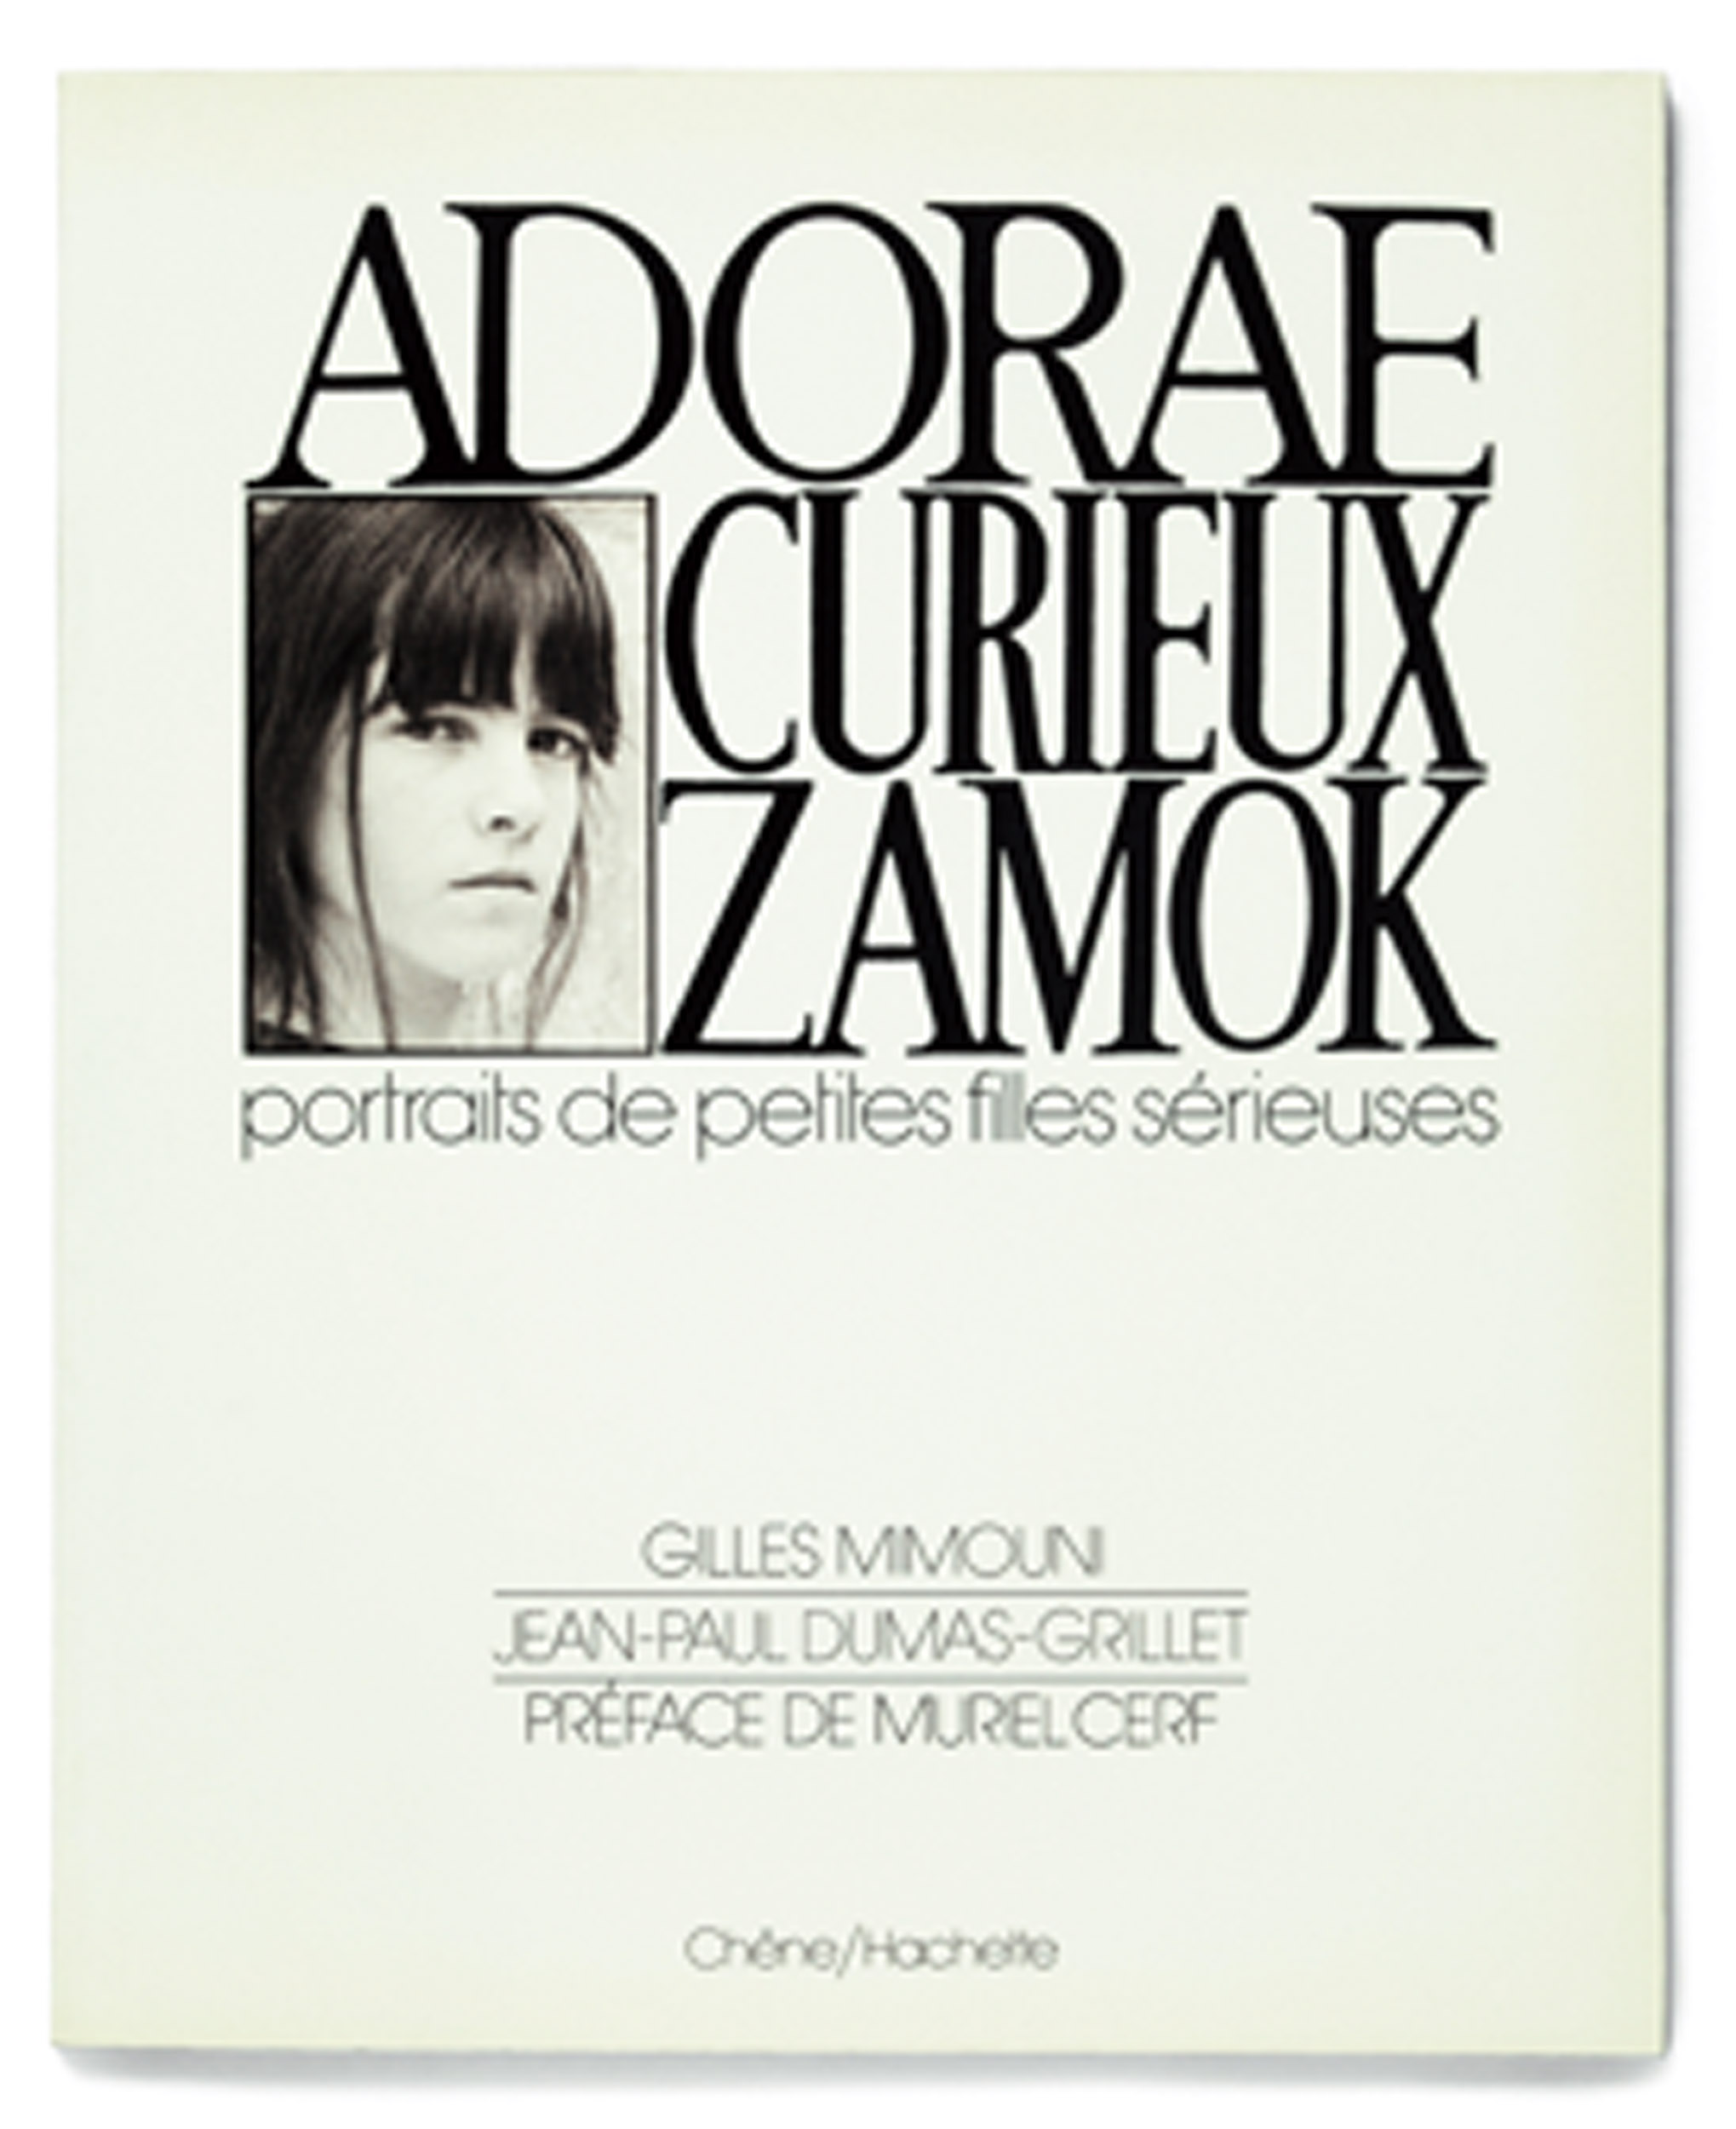 Adore Curieux Zamok